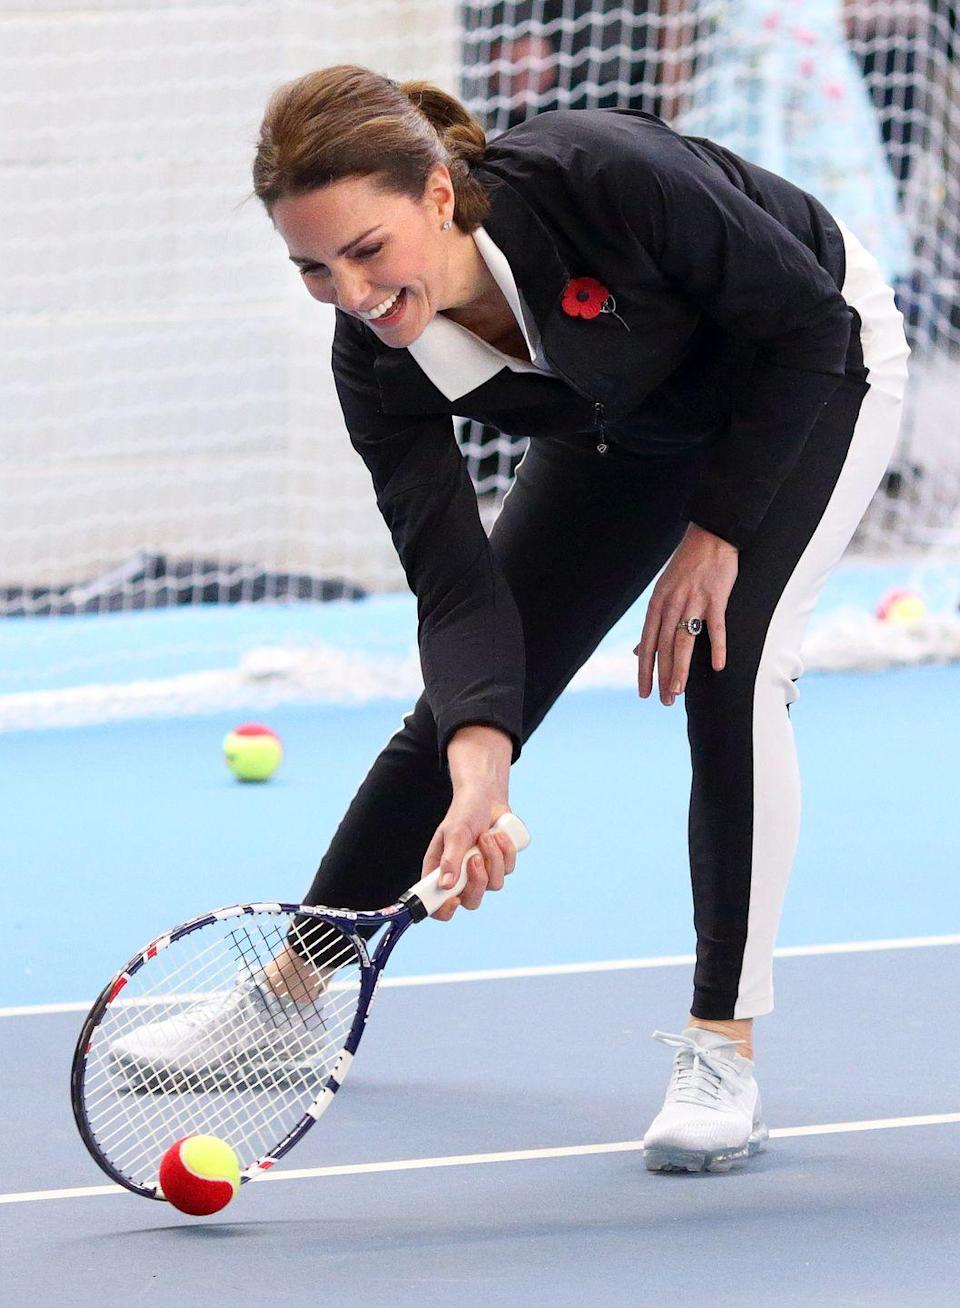 <p>While rallying at the National Tennis Centre, Kate sported a chic black and white look. </p>